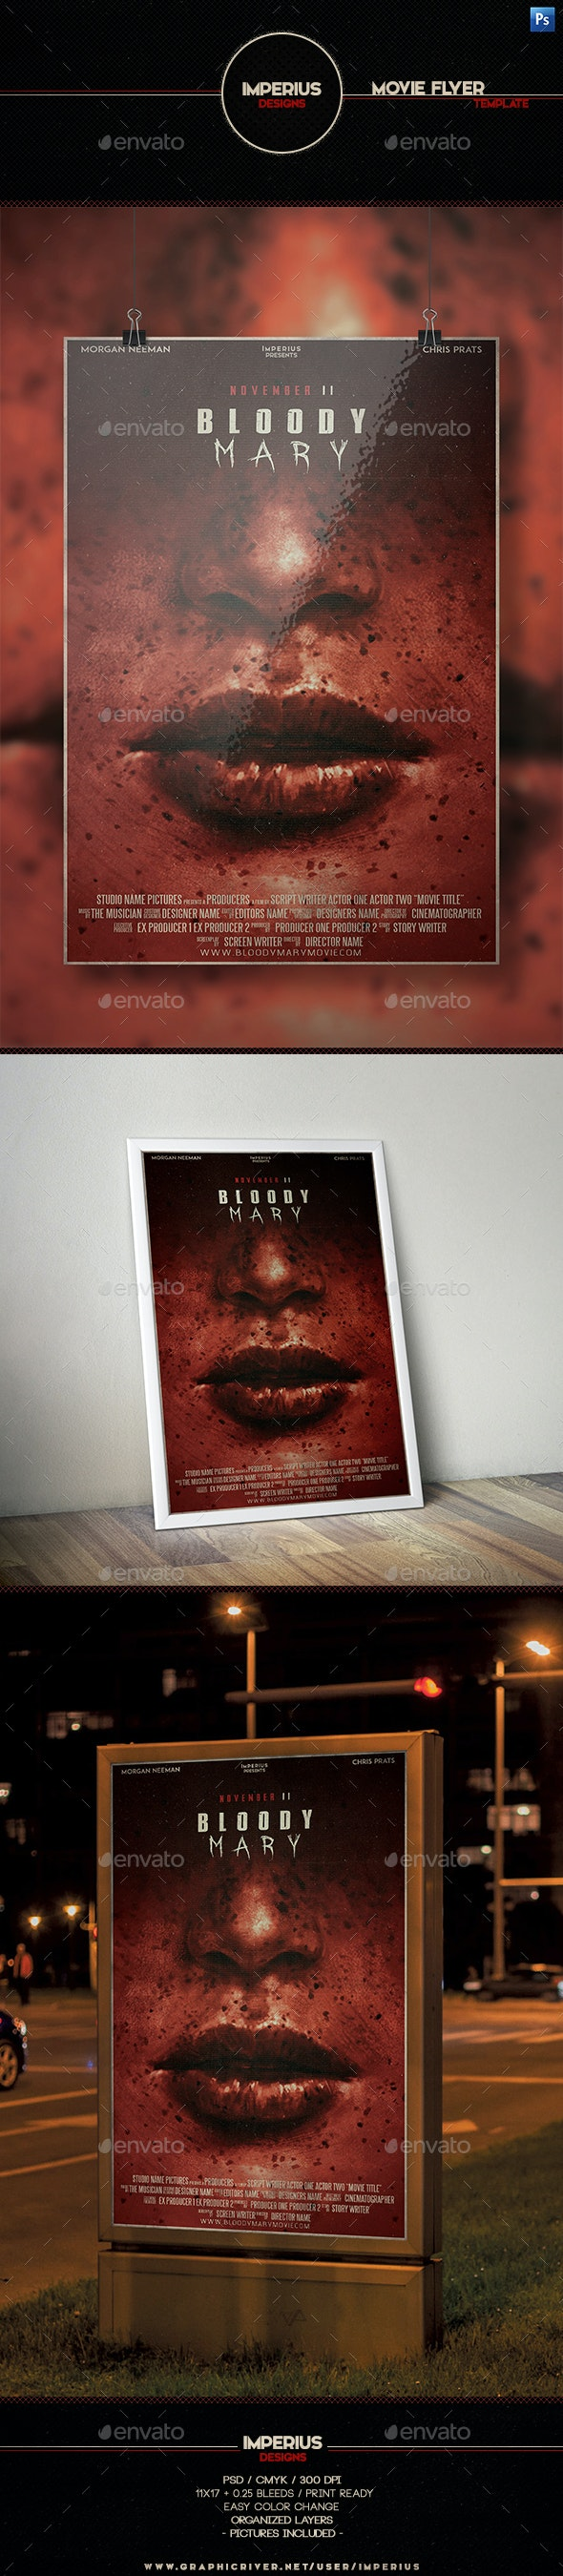 Bloody Mary Movie Flyer - Flyers Print Templates